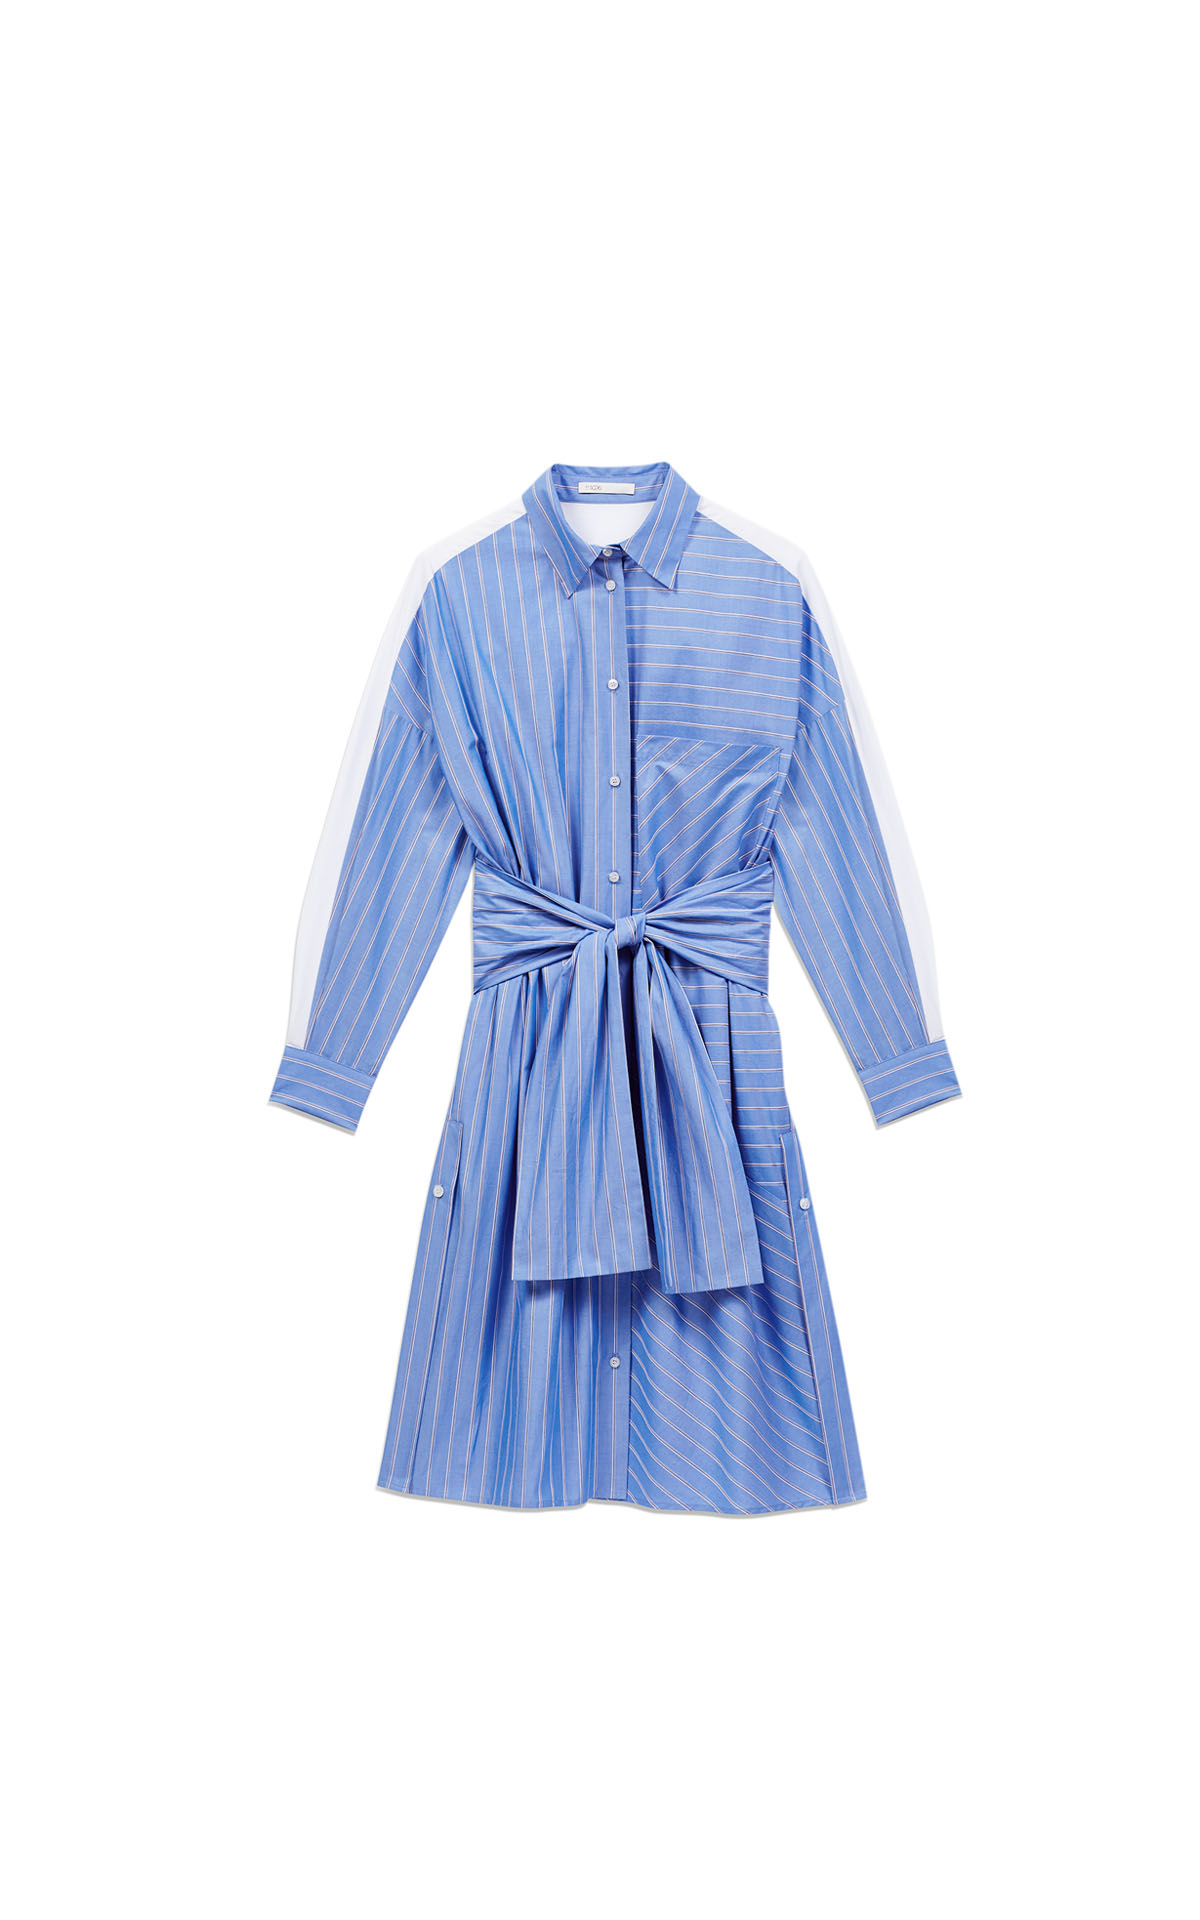 Maje Shirt Dress at The Bicester Village Shopping Collection